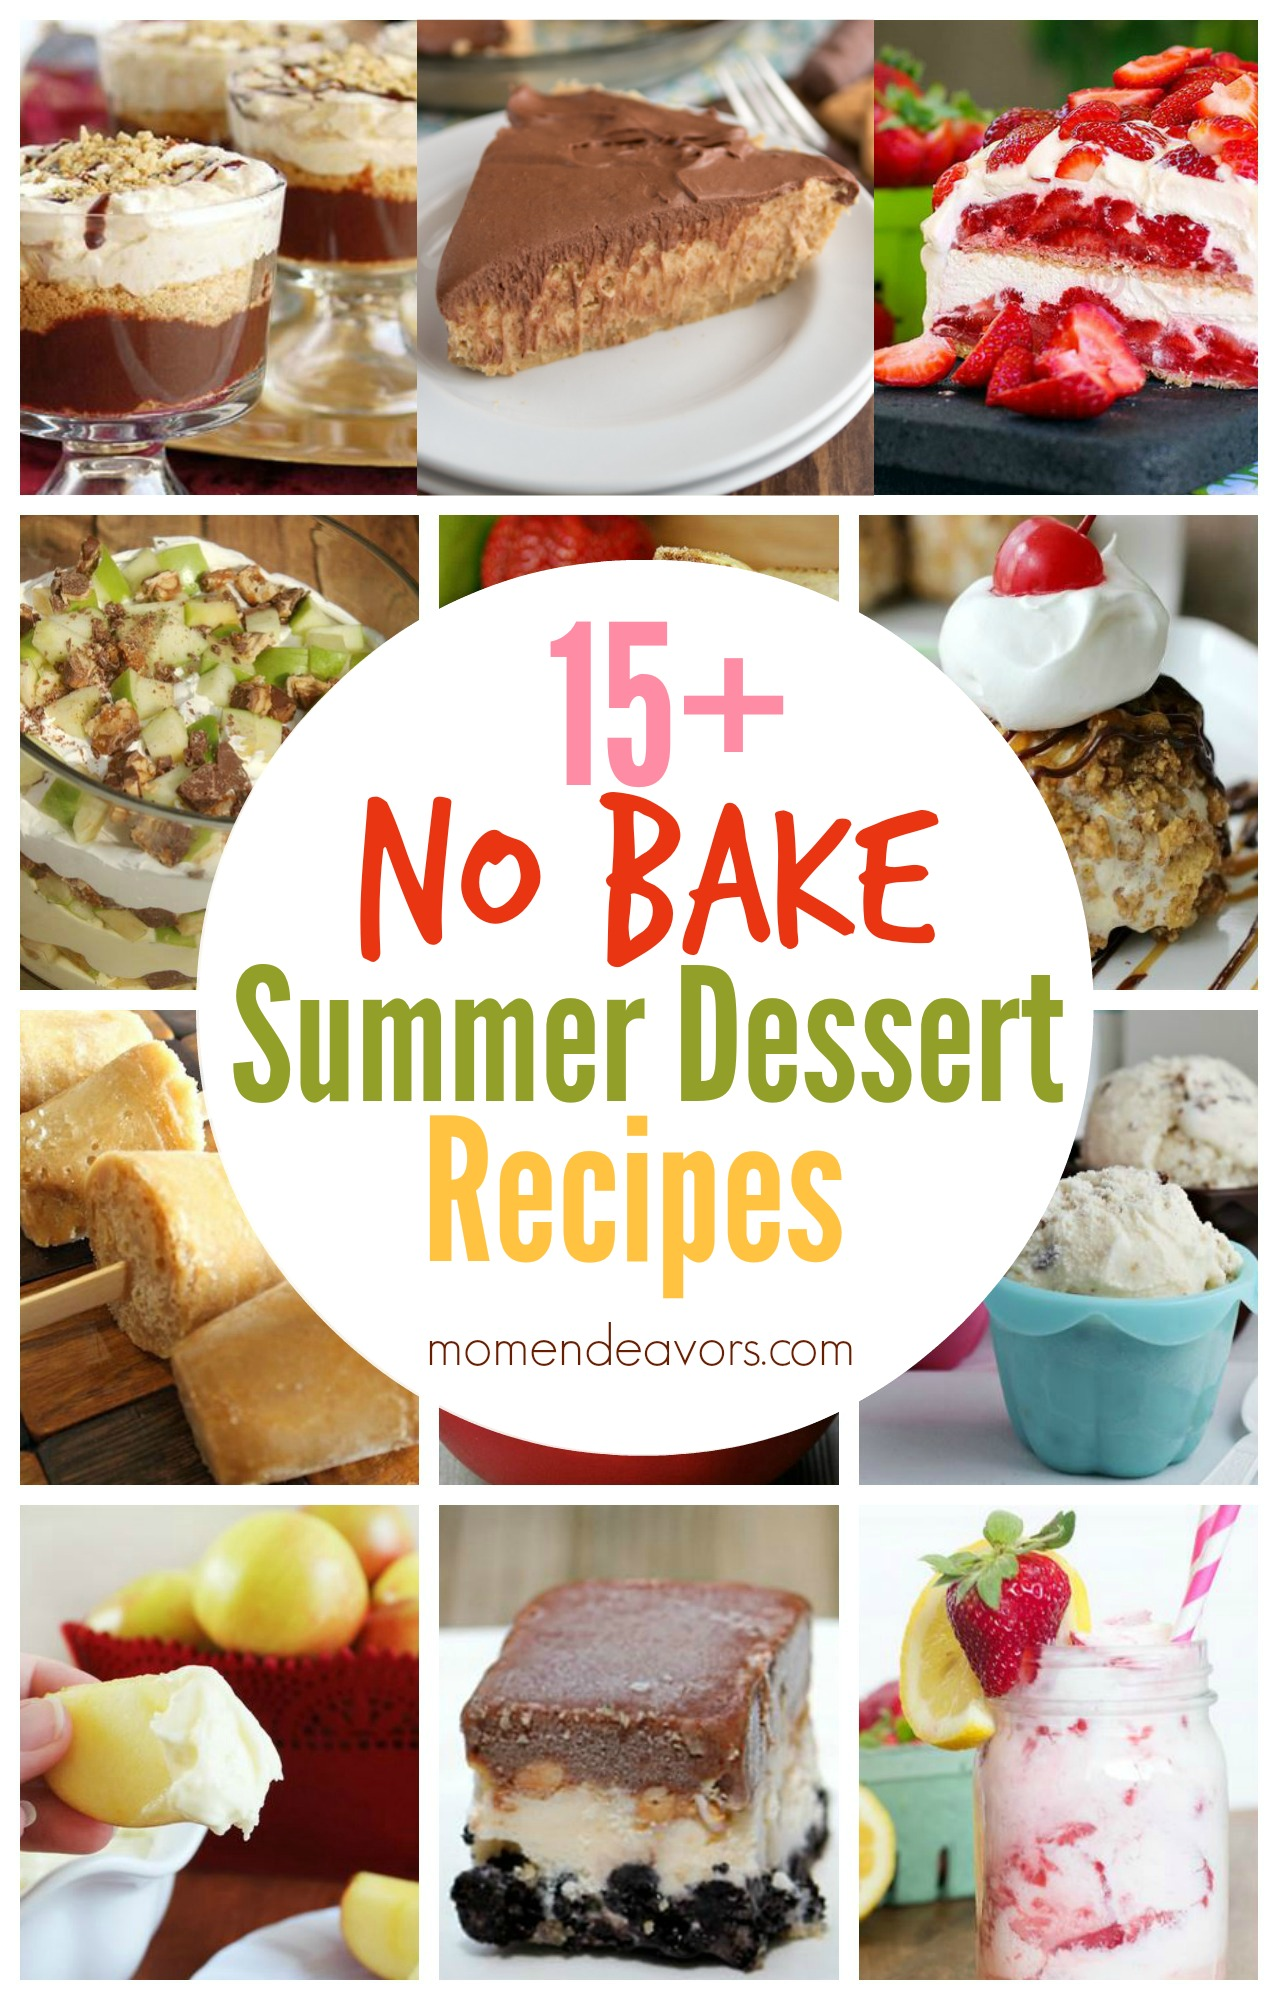 15+ No Bake Summer Dessert Recipes